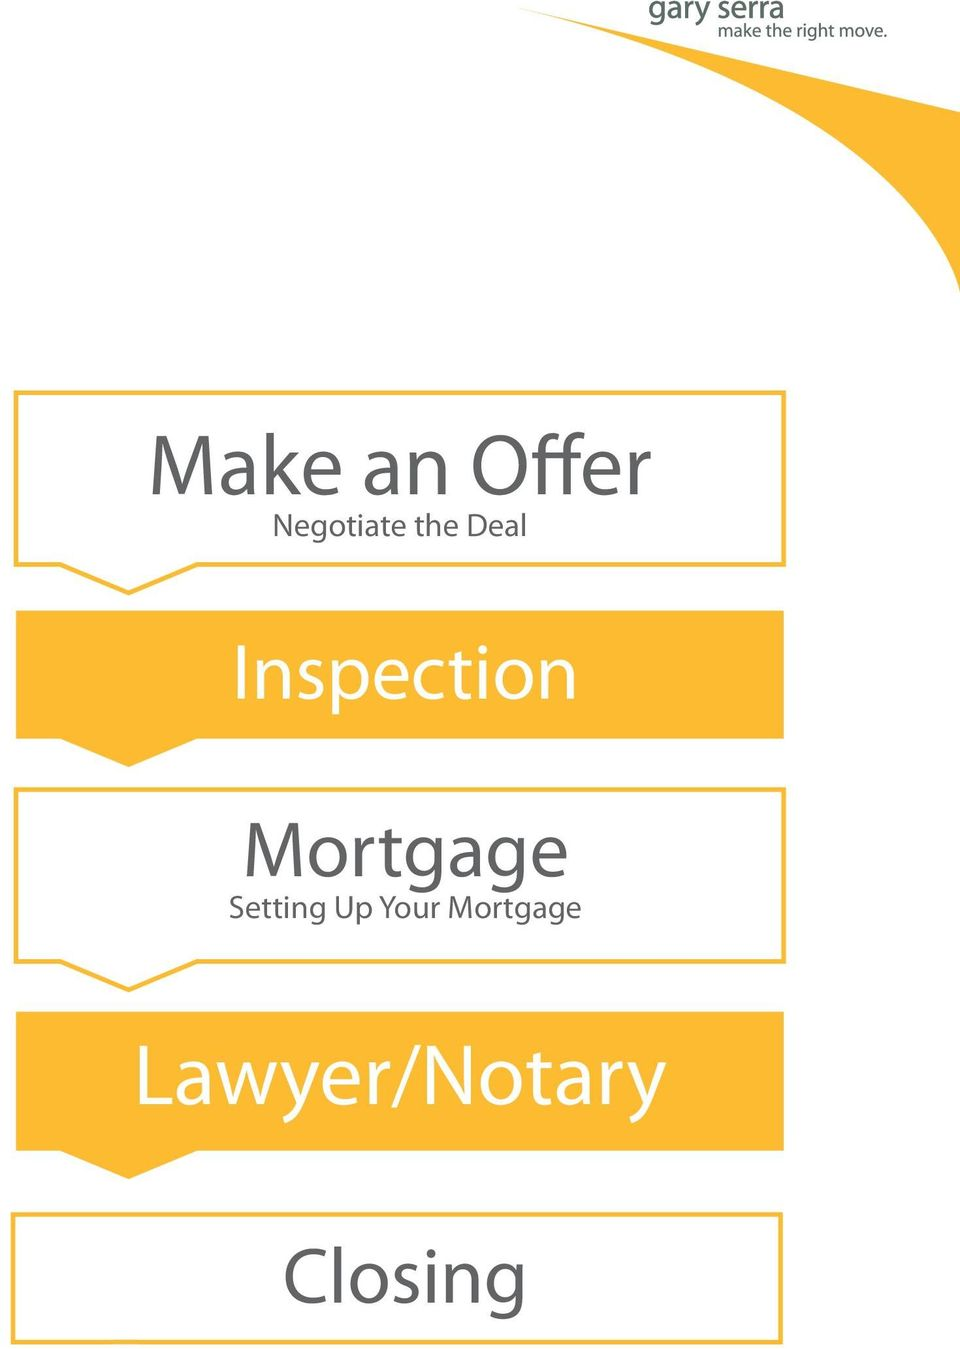 Mortgage Setting Up Your